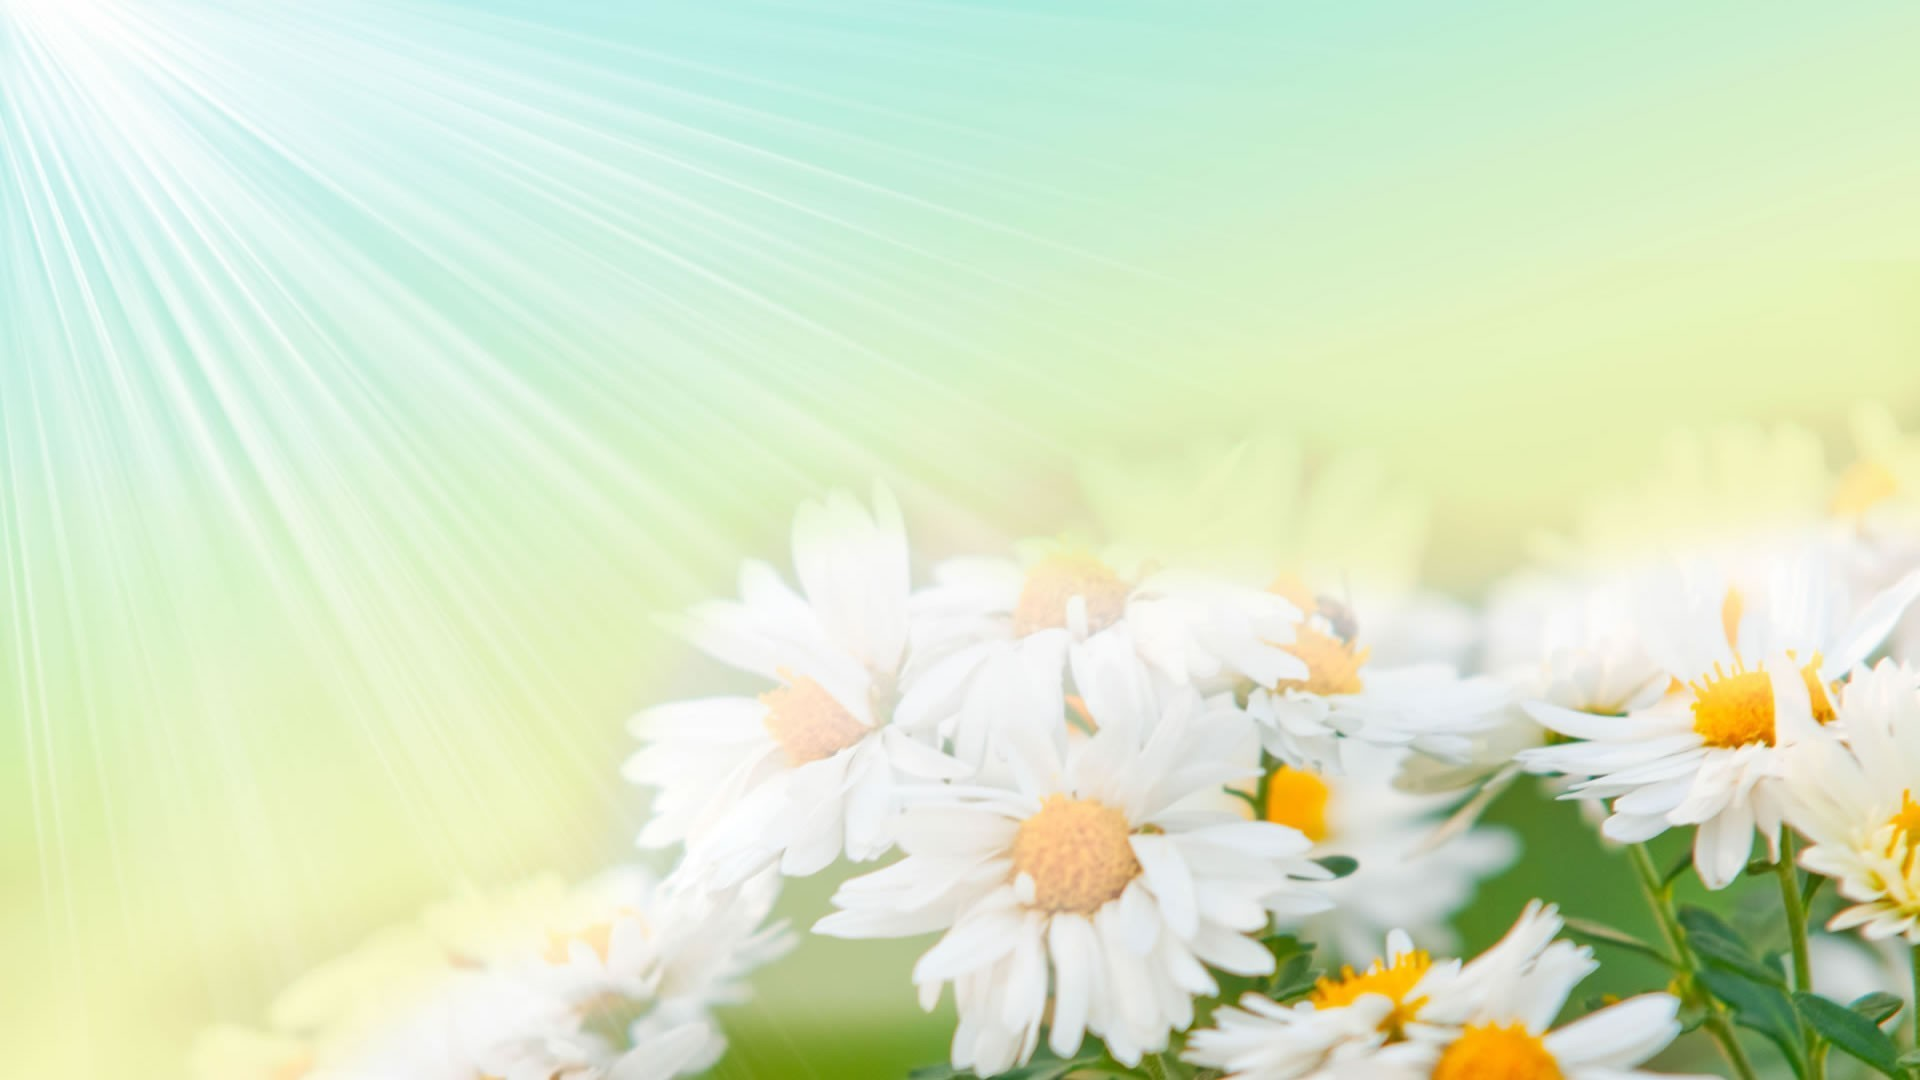 Res: 1920x1080, Best Flower Wallpapers High Resolution Archives - Only Fun